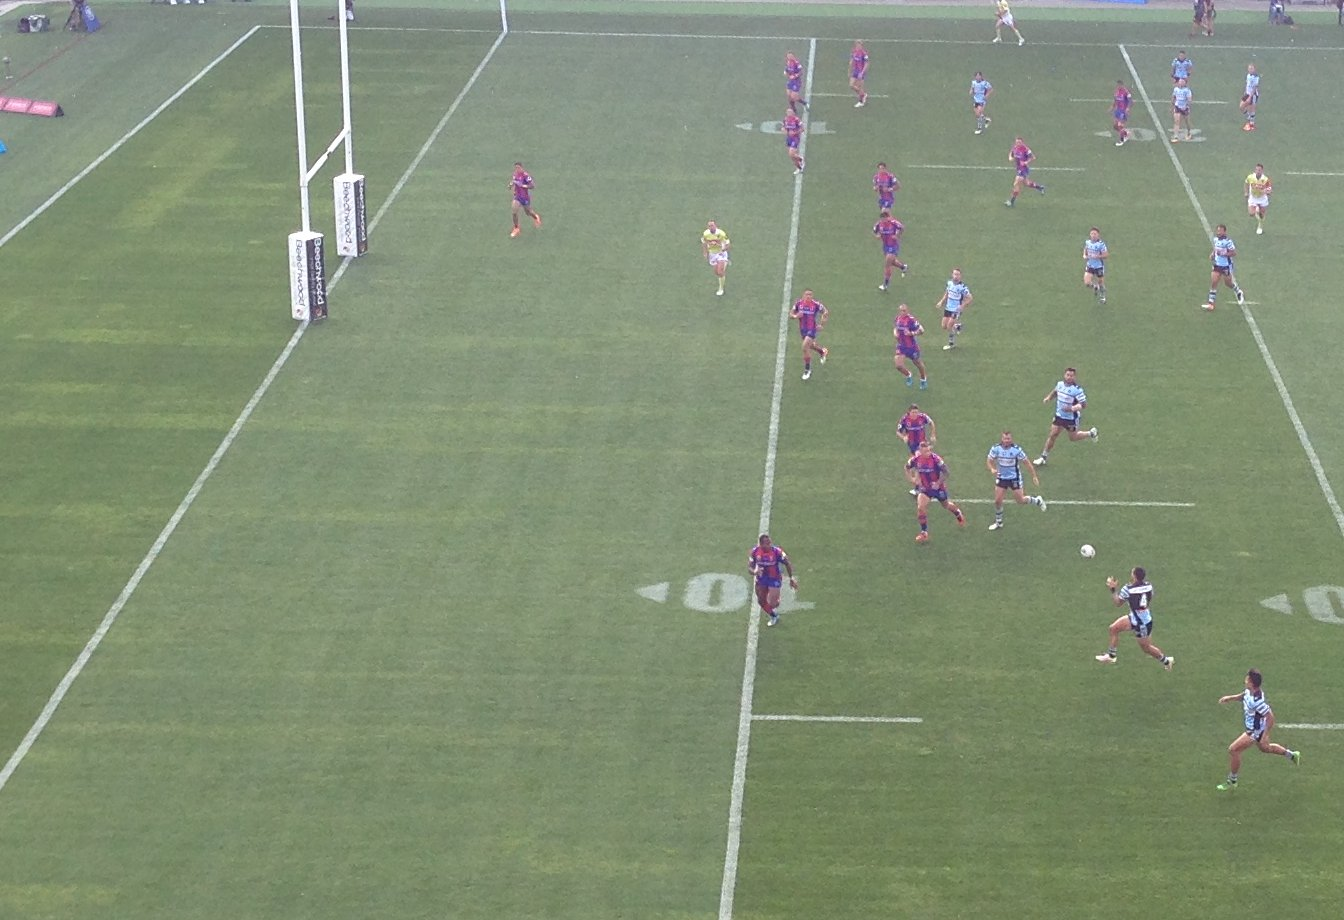 The Cronulla Sharks, moments before they cross for yet another try.